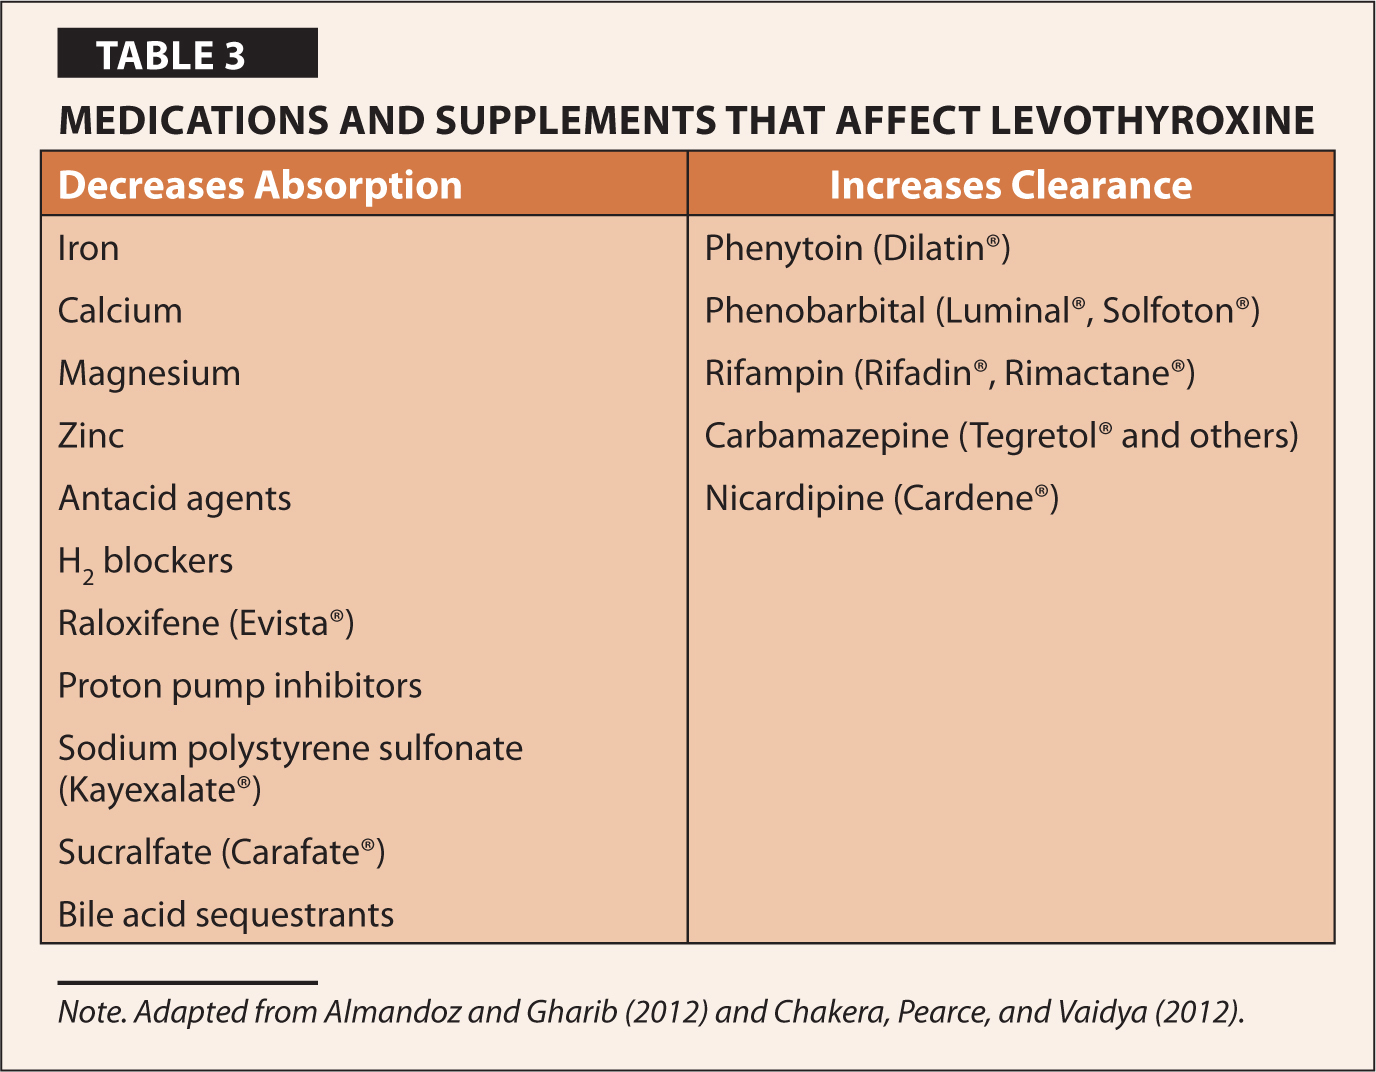 Medications and Supplements That Affect Levothyroxine